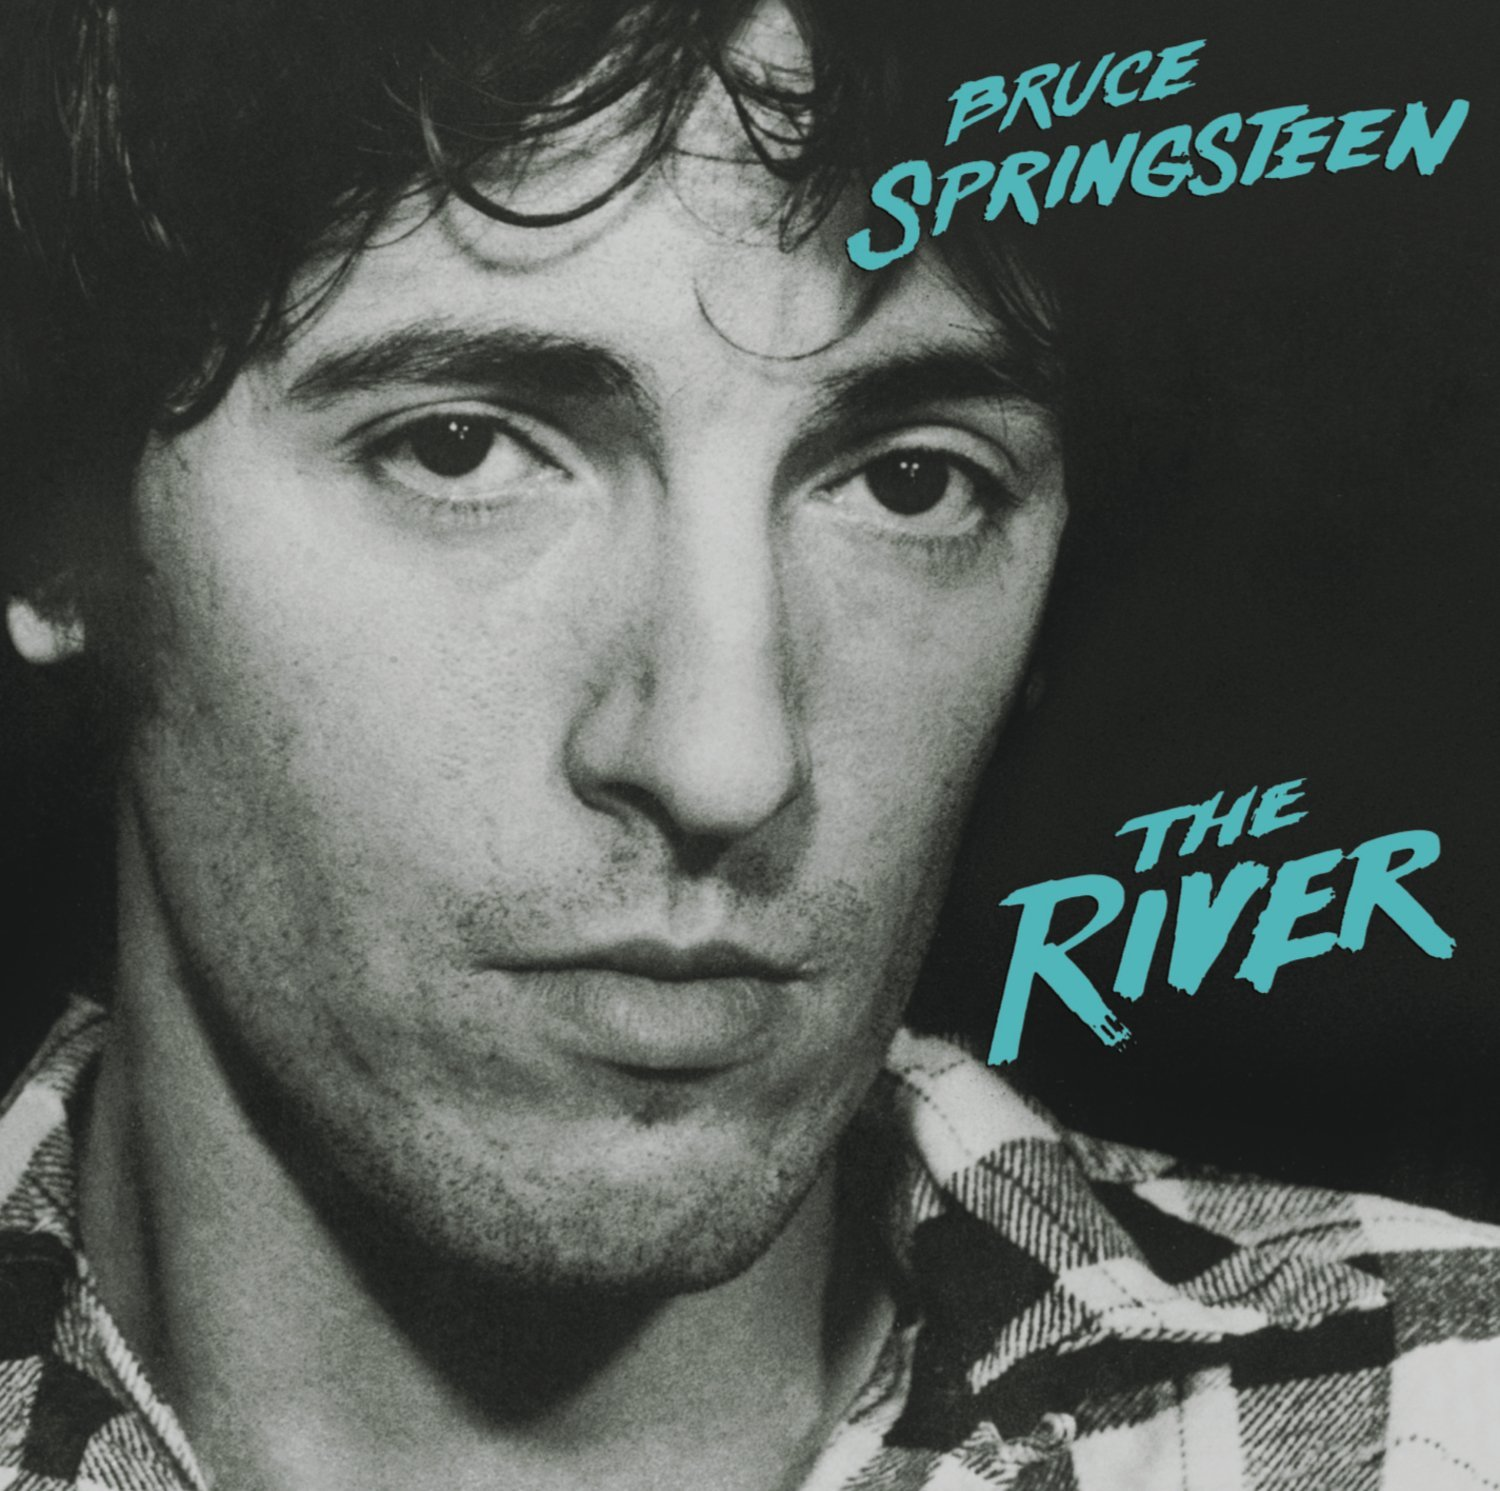 The river photo